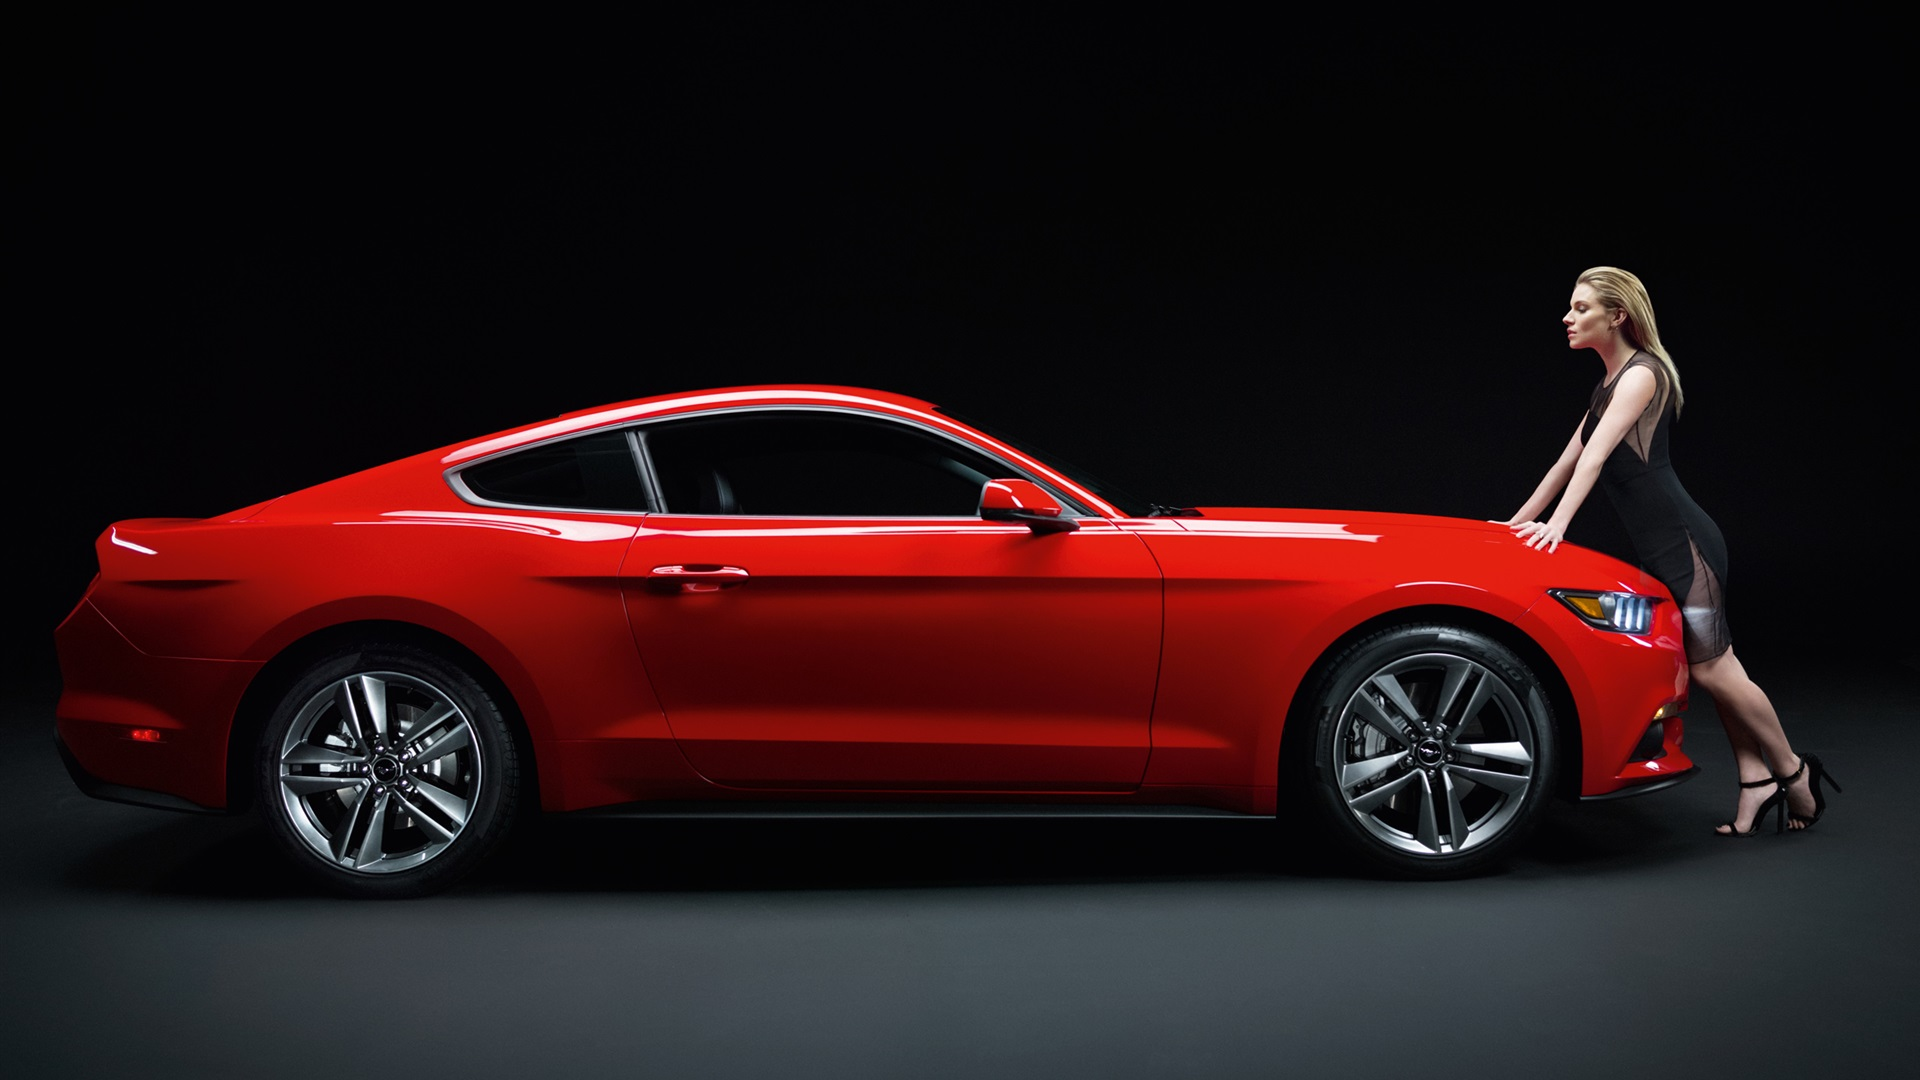 Wallpaper Ford Mustang Gt Red Muscle Car With Girl